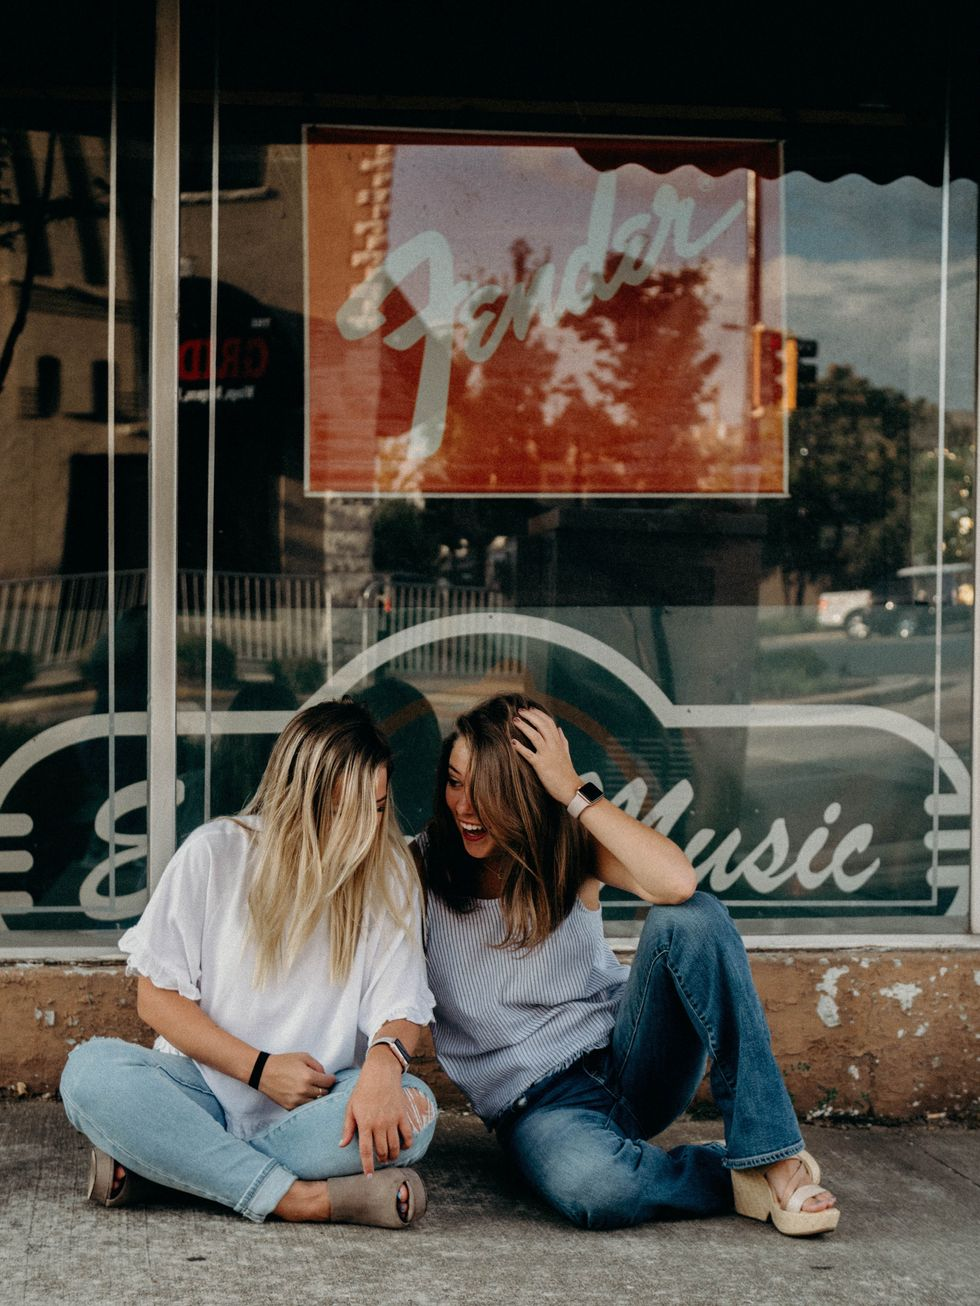 To My Ex-Best Friend, I'm Sorry I Let You Have Such An Impact On My Life